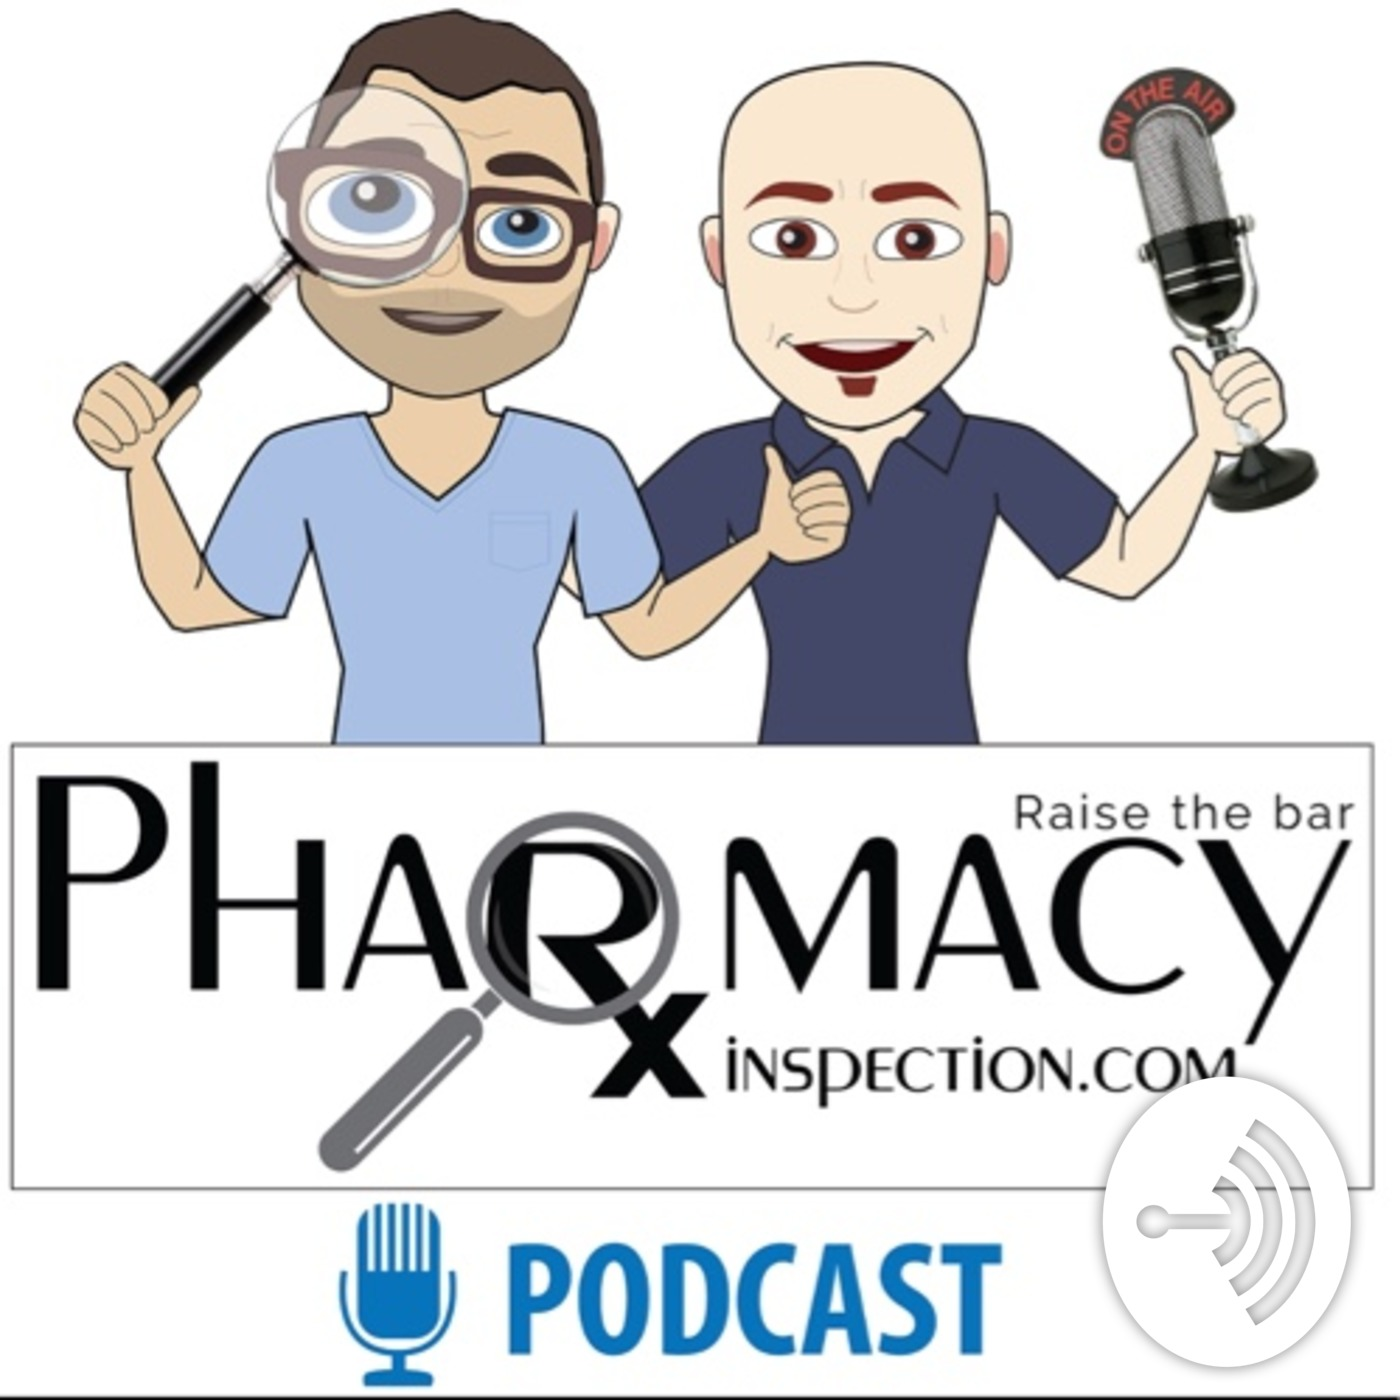 Pharmacy Inspection Podcast Episode 14 - Herschell Hitchcock